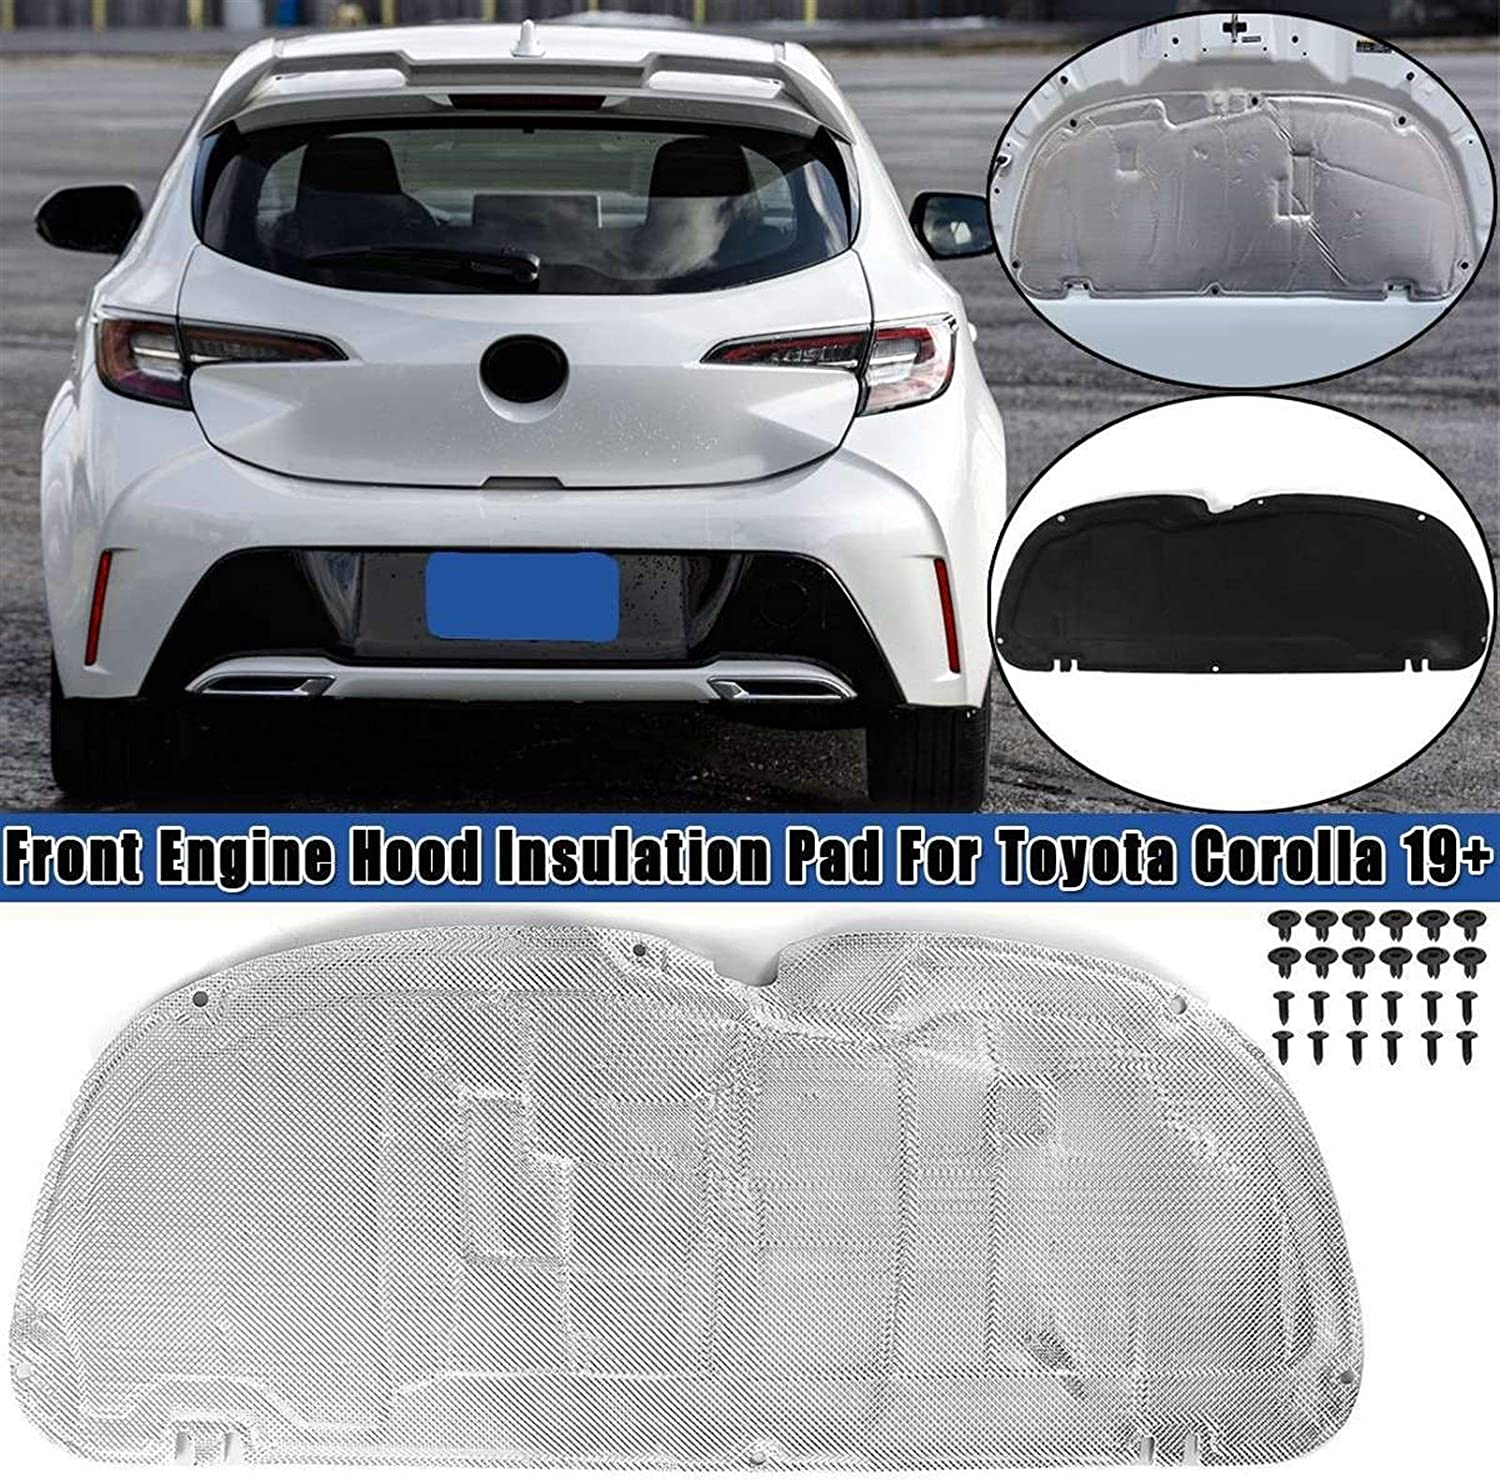 Color Name : Black Car Accessorie Wearable XUNLAN Durable Car Hood Engine Thermal Insulation Sound Insulation Cotton Heat Insulation Pad Mat Fits Fit for Toyota Corolla 2019